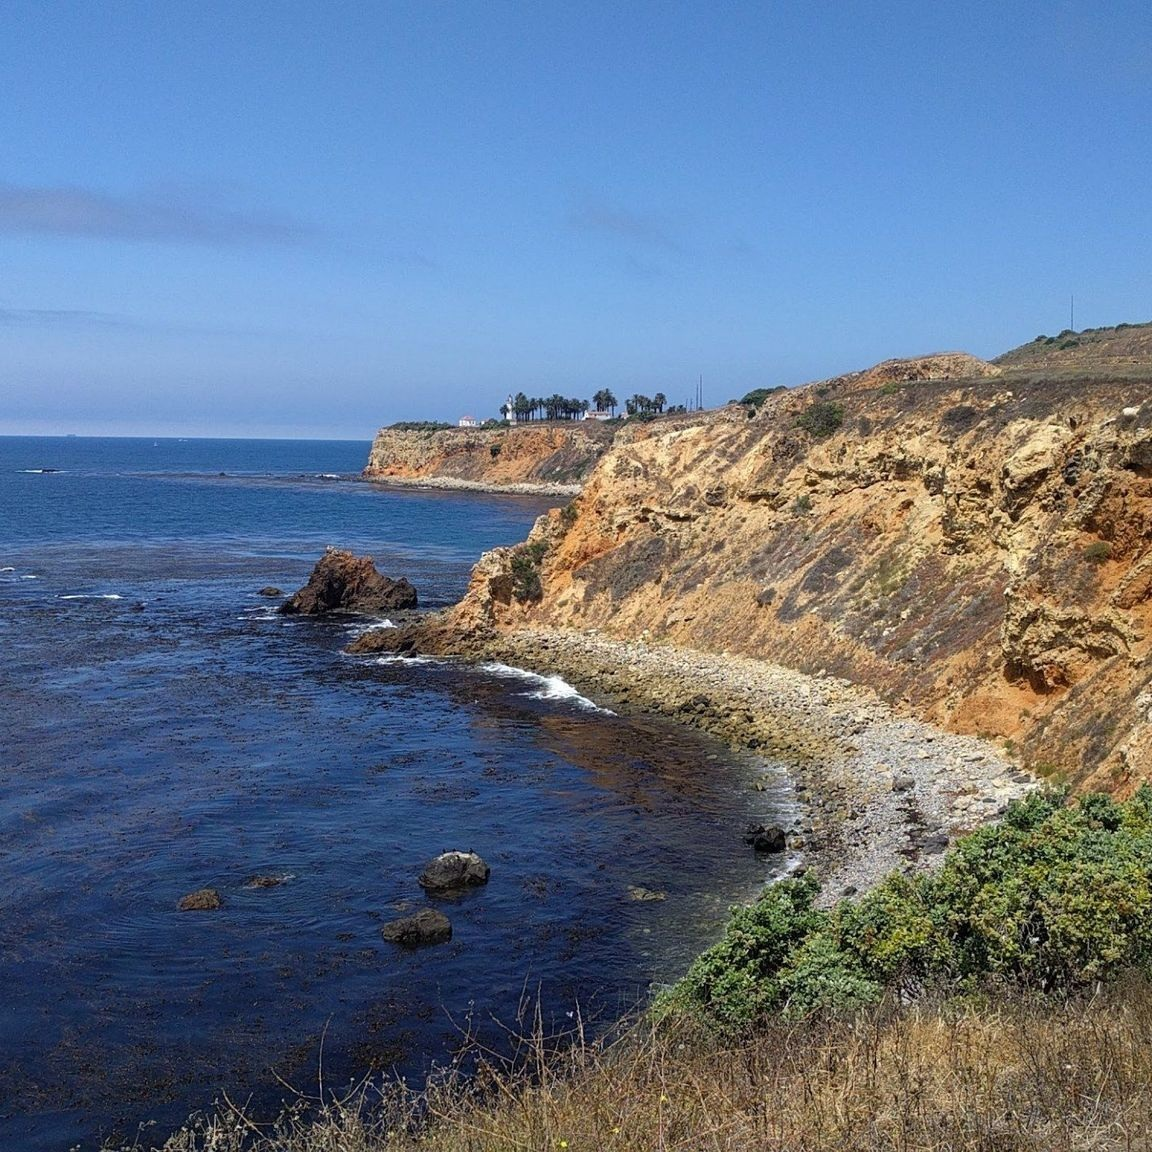 """PEAK: Terranea Discovery Trail - DIFFICULTY: 1/5SCENERY: Hike along the Pacific Ocean and take a dip at the middle of our hike!FUN FACT: The word """"Pacific"""" means peaceful. The Pacific Ocean got its name from the explorer Ferdinand Magellan. He called the ocean """"mar pacific"""", which meant peaceful sea."""